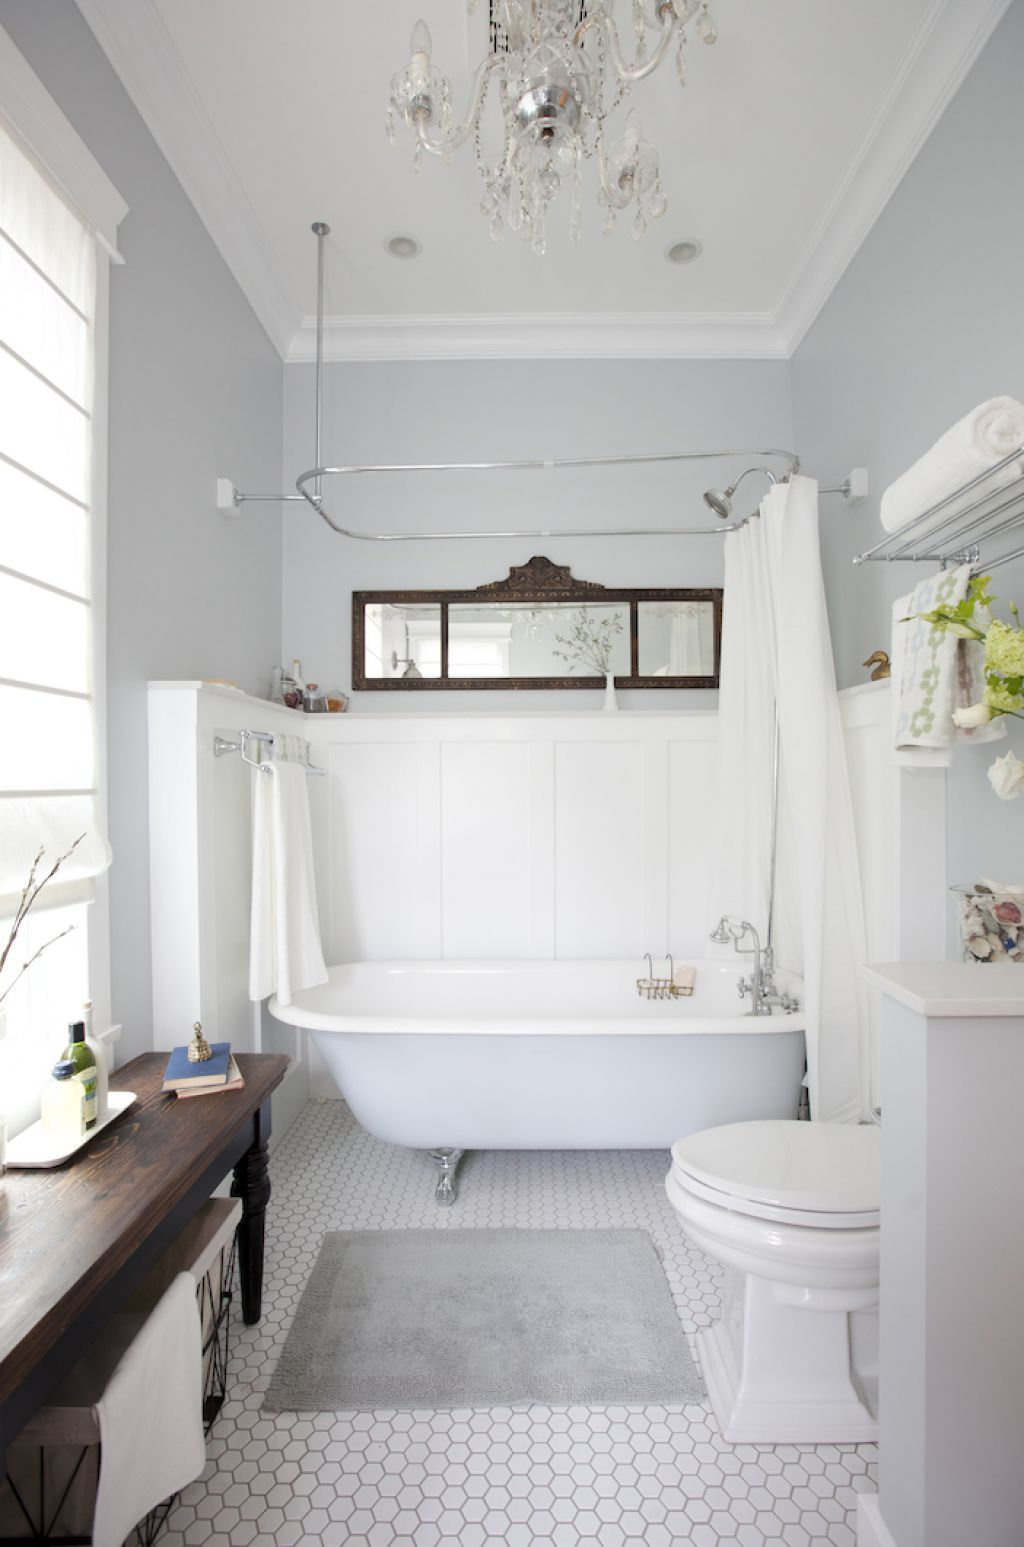 Bathroom Wainscoting Is Decorative And Protect The Walls | Sinks ...